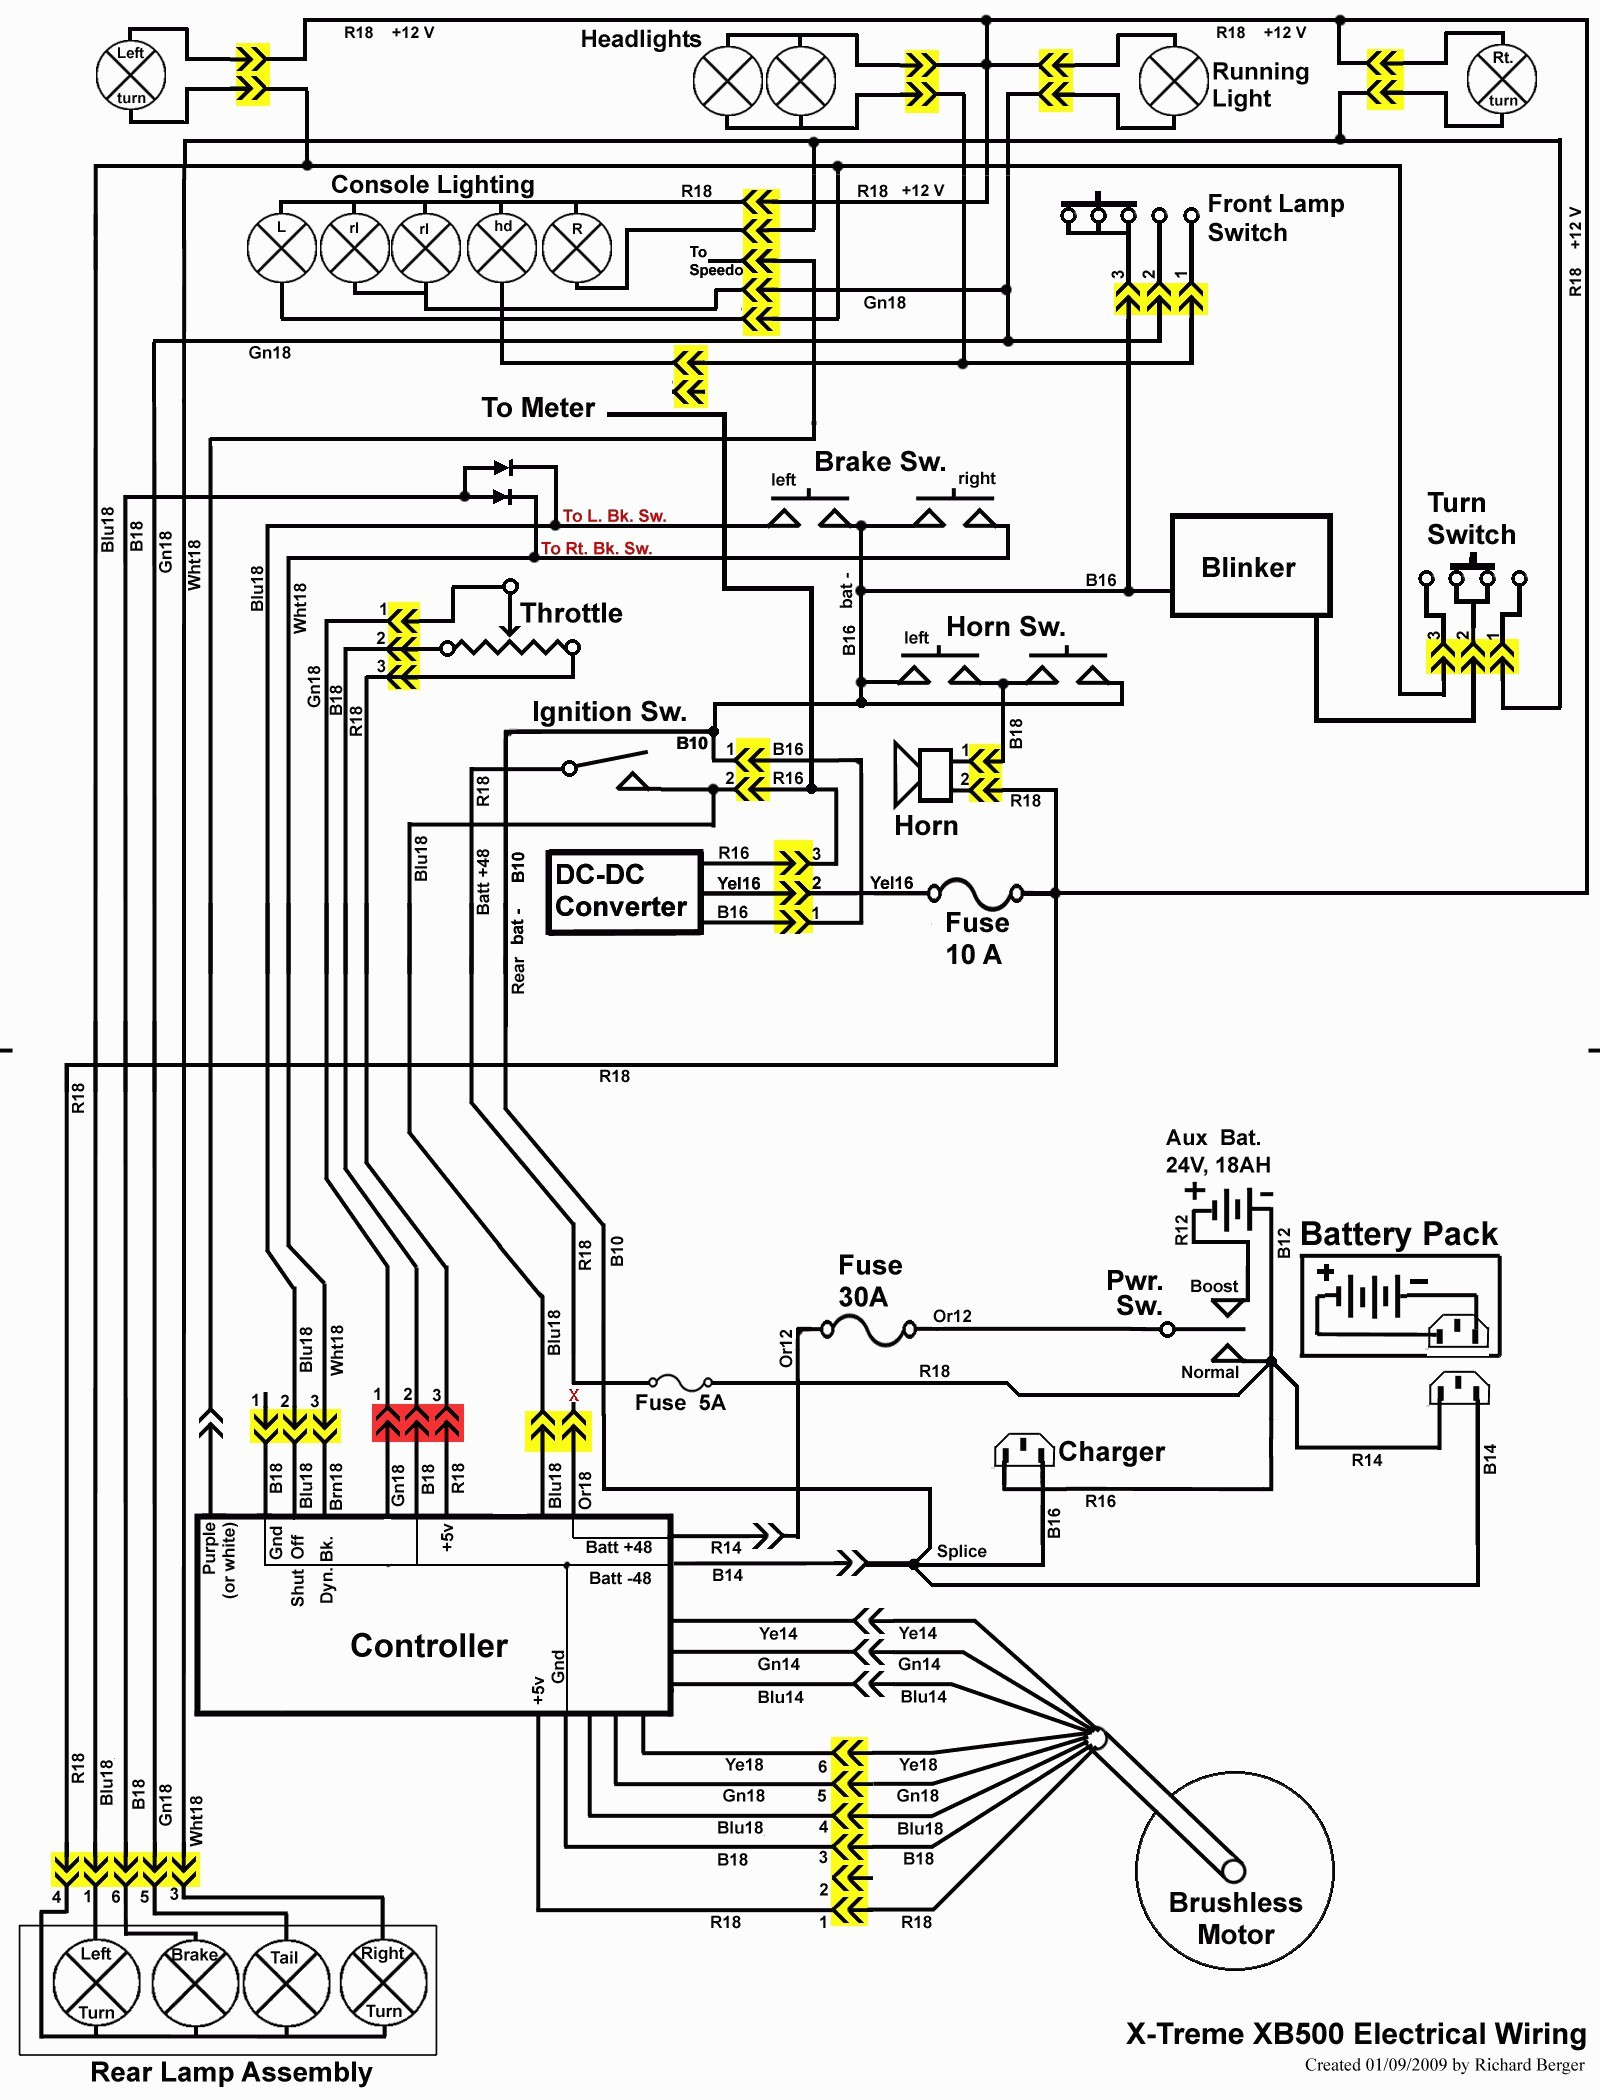 Rascal 600 B Electrical Diagram - Wiring Diagram Img on